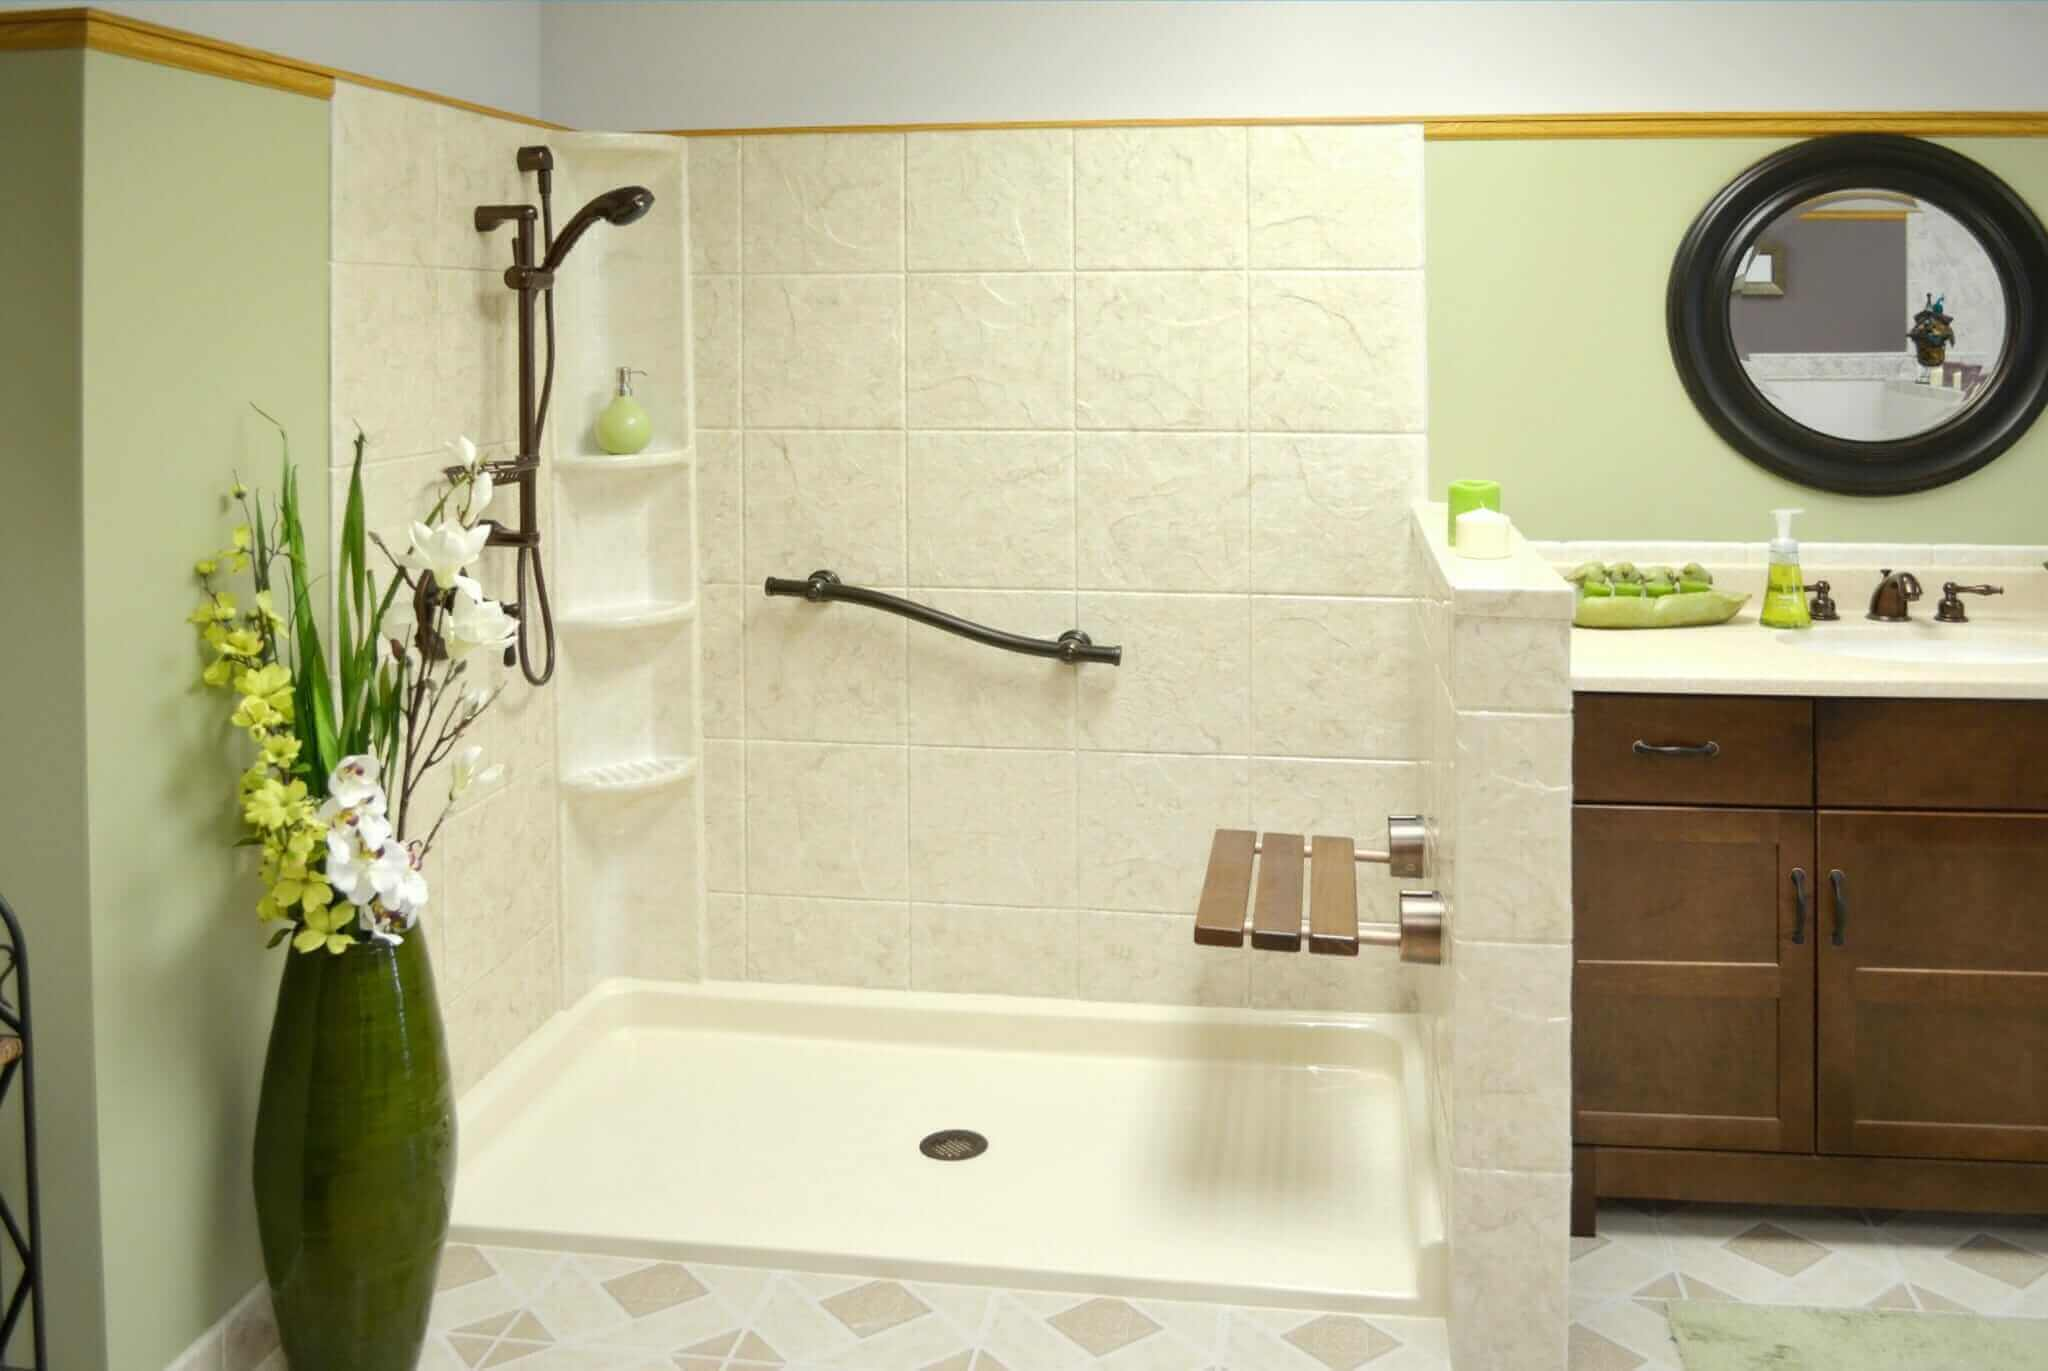 When to Install Safety Features in Your Bathroom -